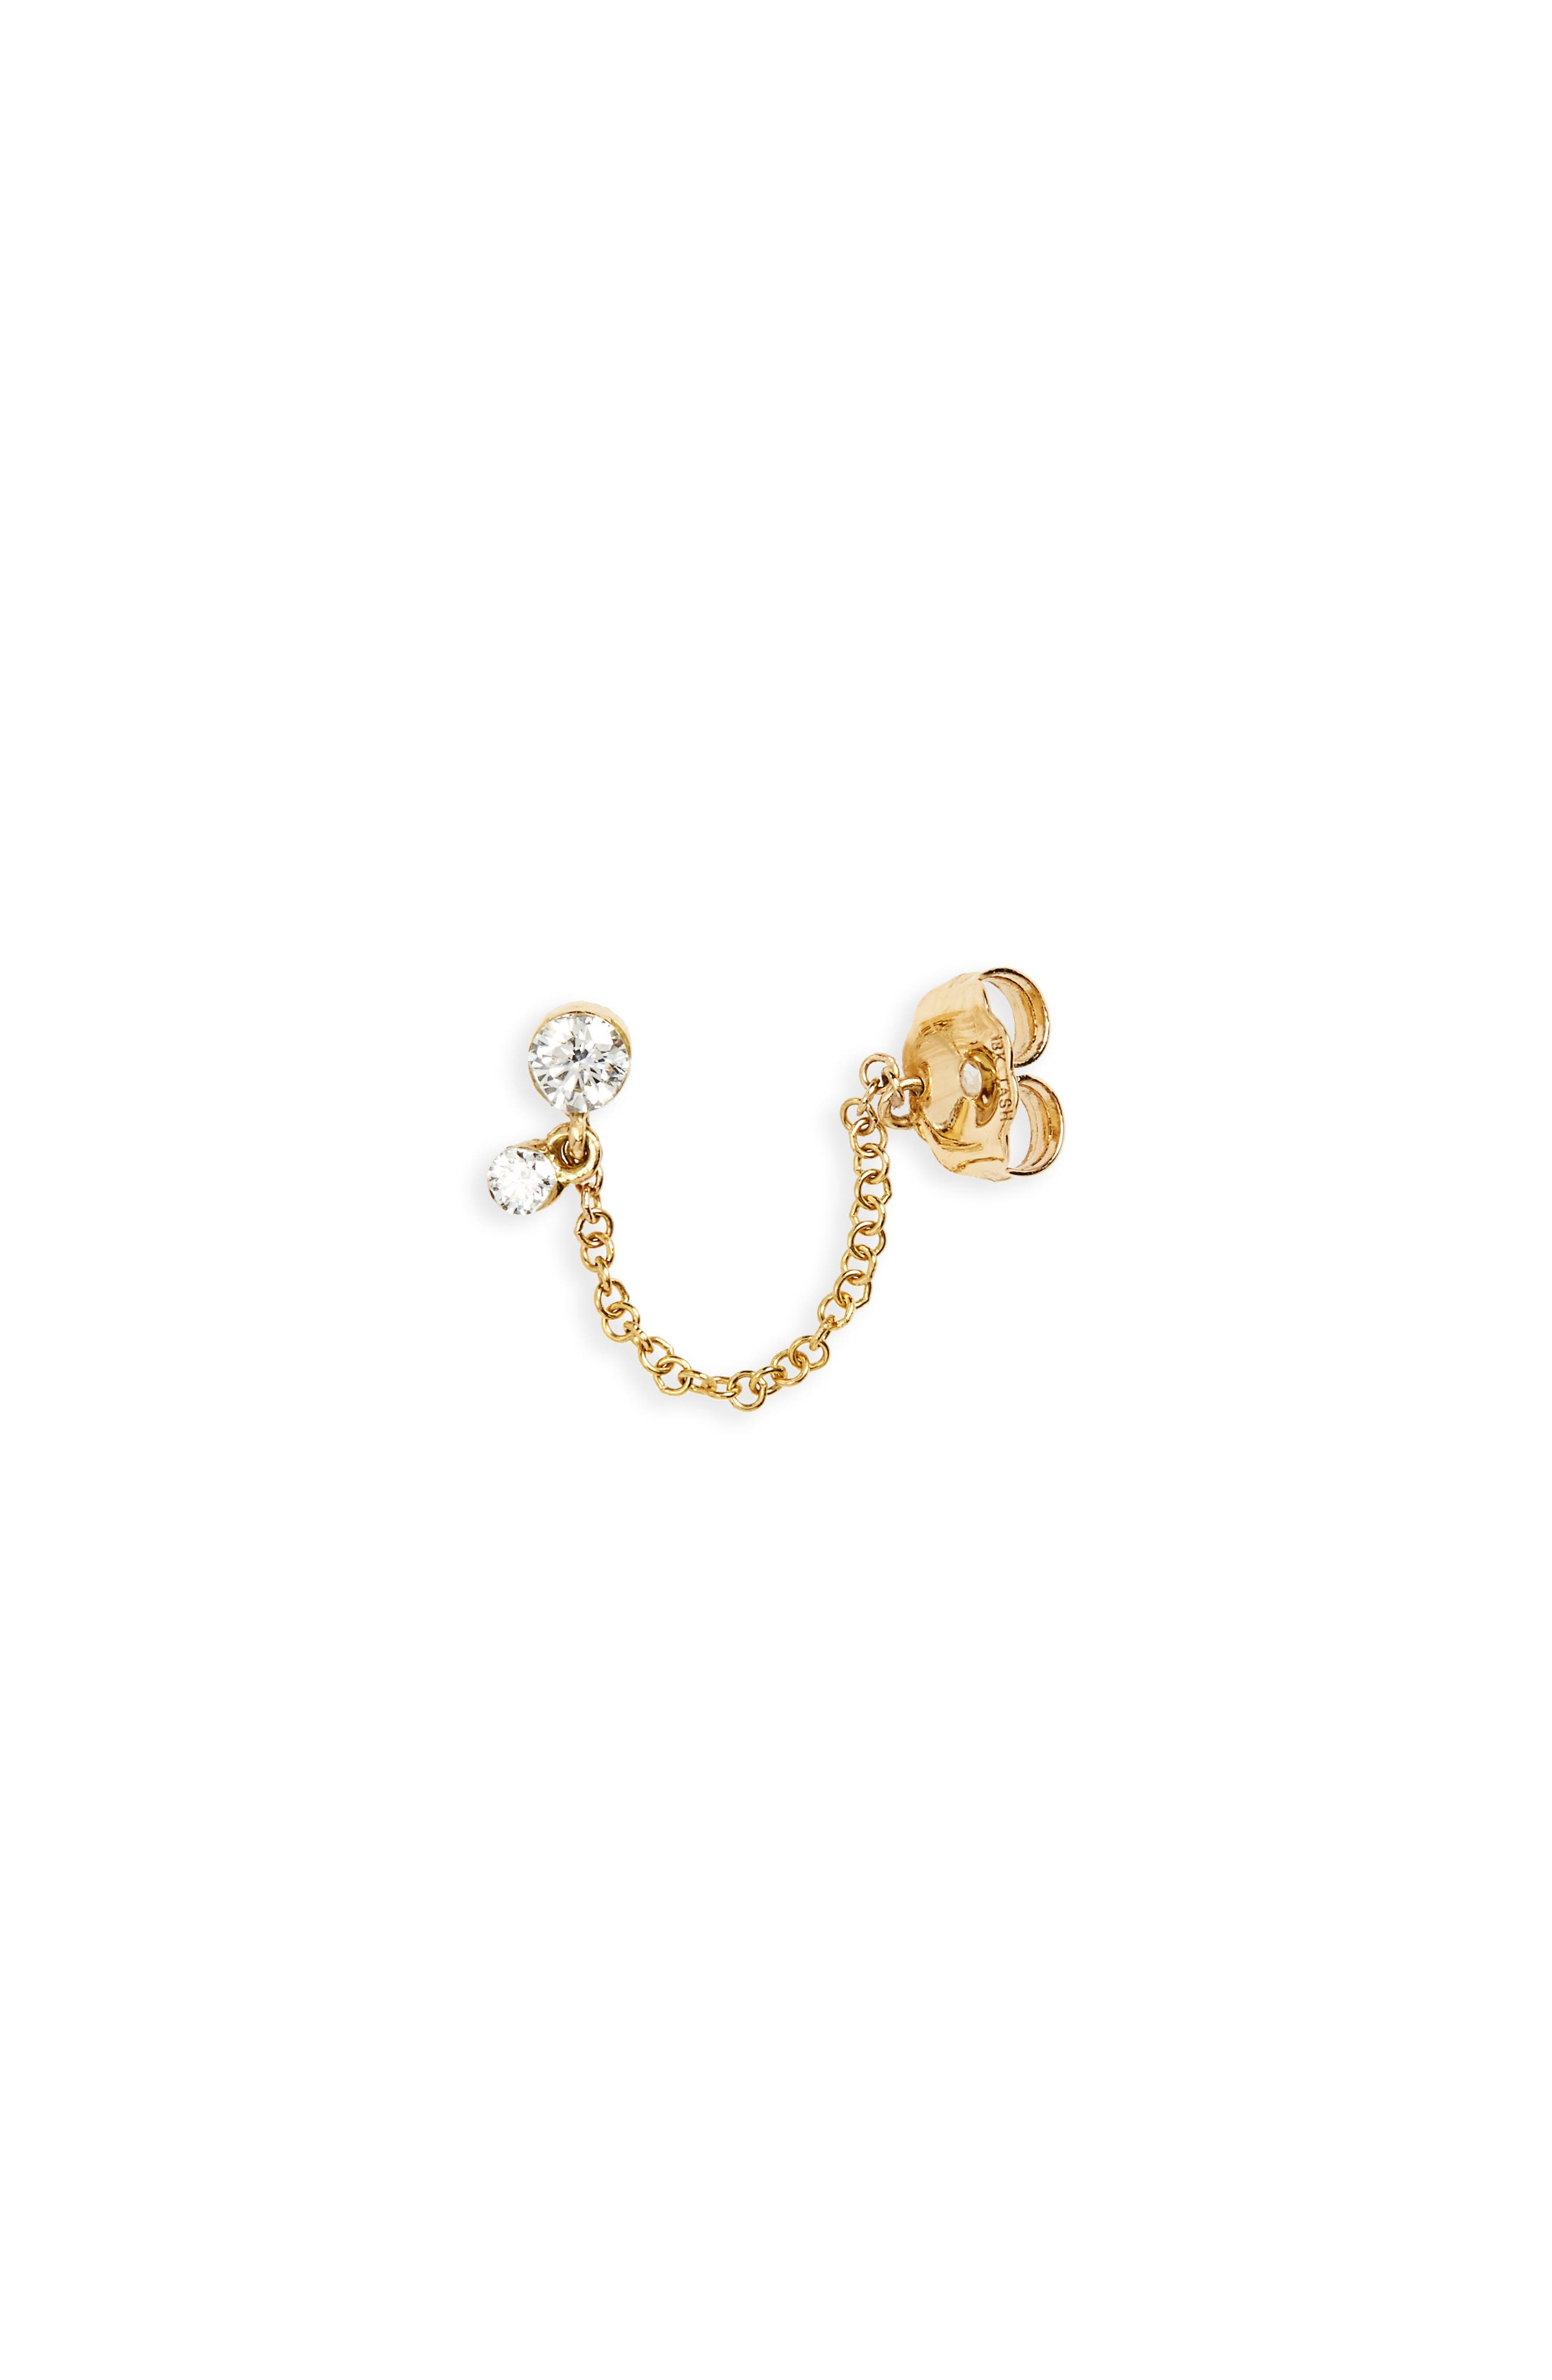 Invisibly Set Diamond Dangle & Chain Stud Earring,                         Main,                         color, 710